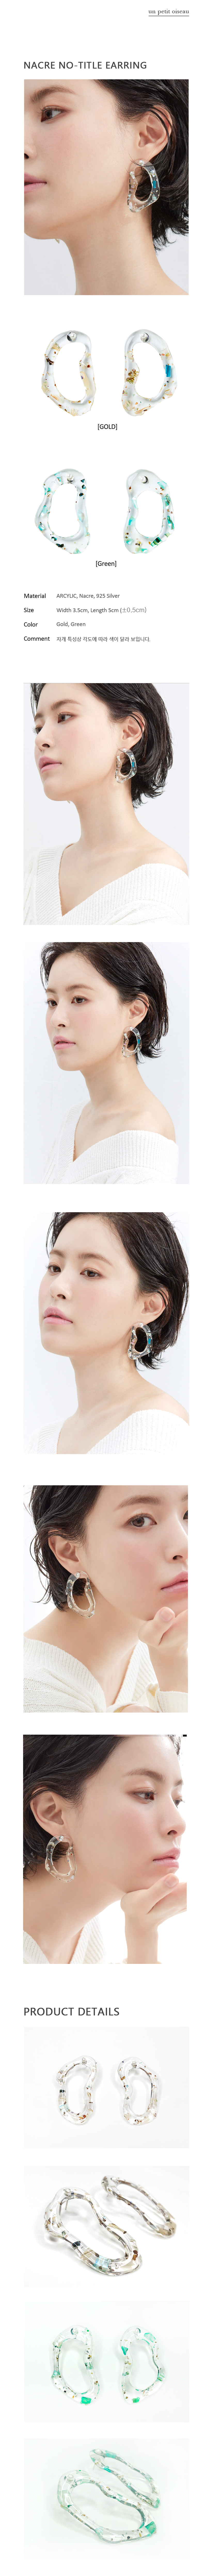 언쁘띠오이슈(UN PETIT OISEAU) Nacre-No title earring (2color)